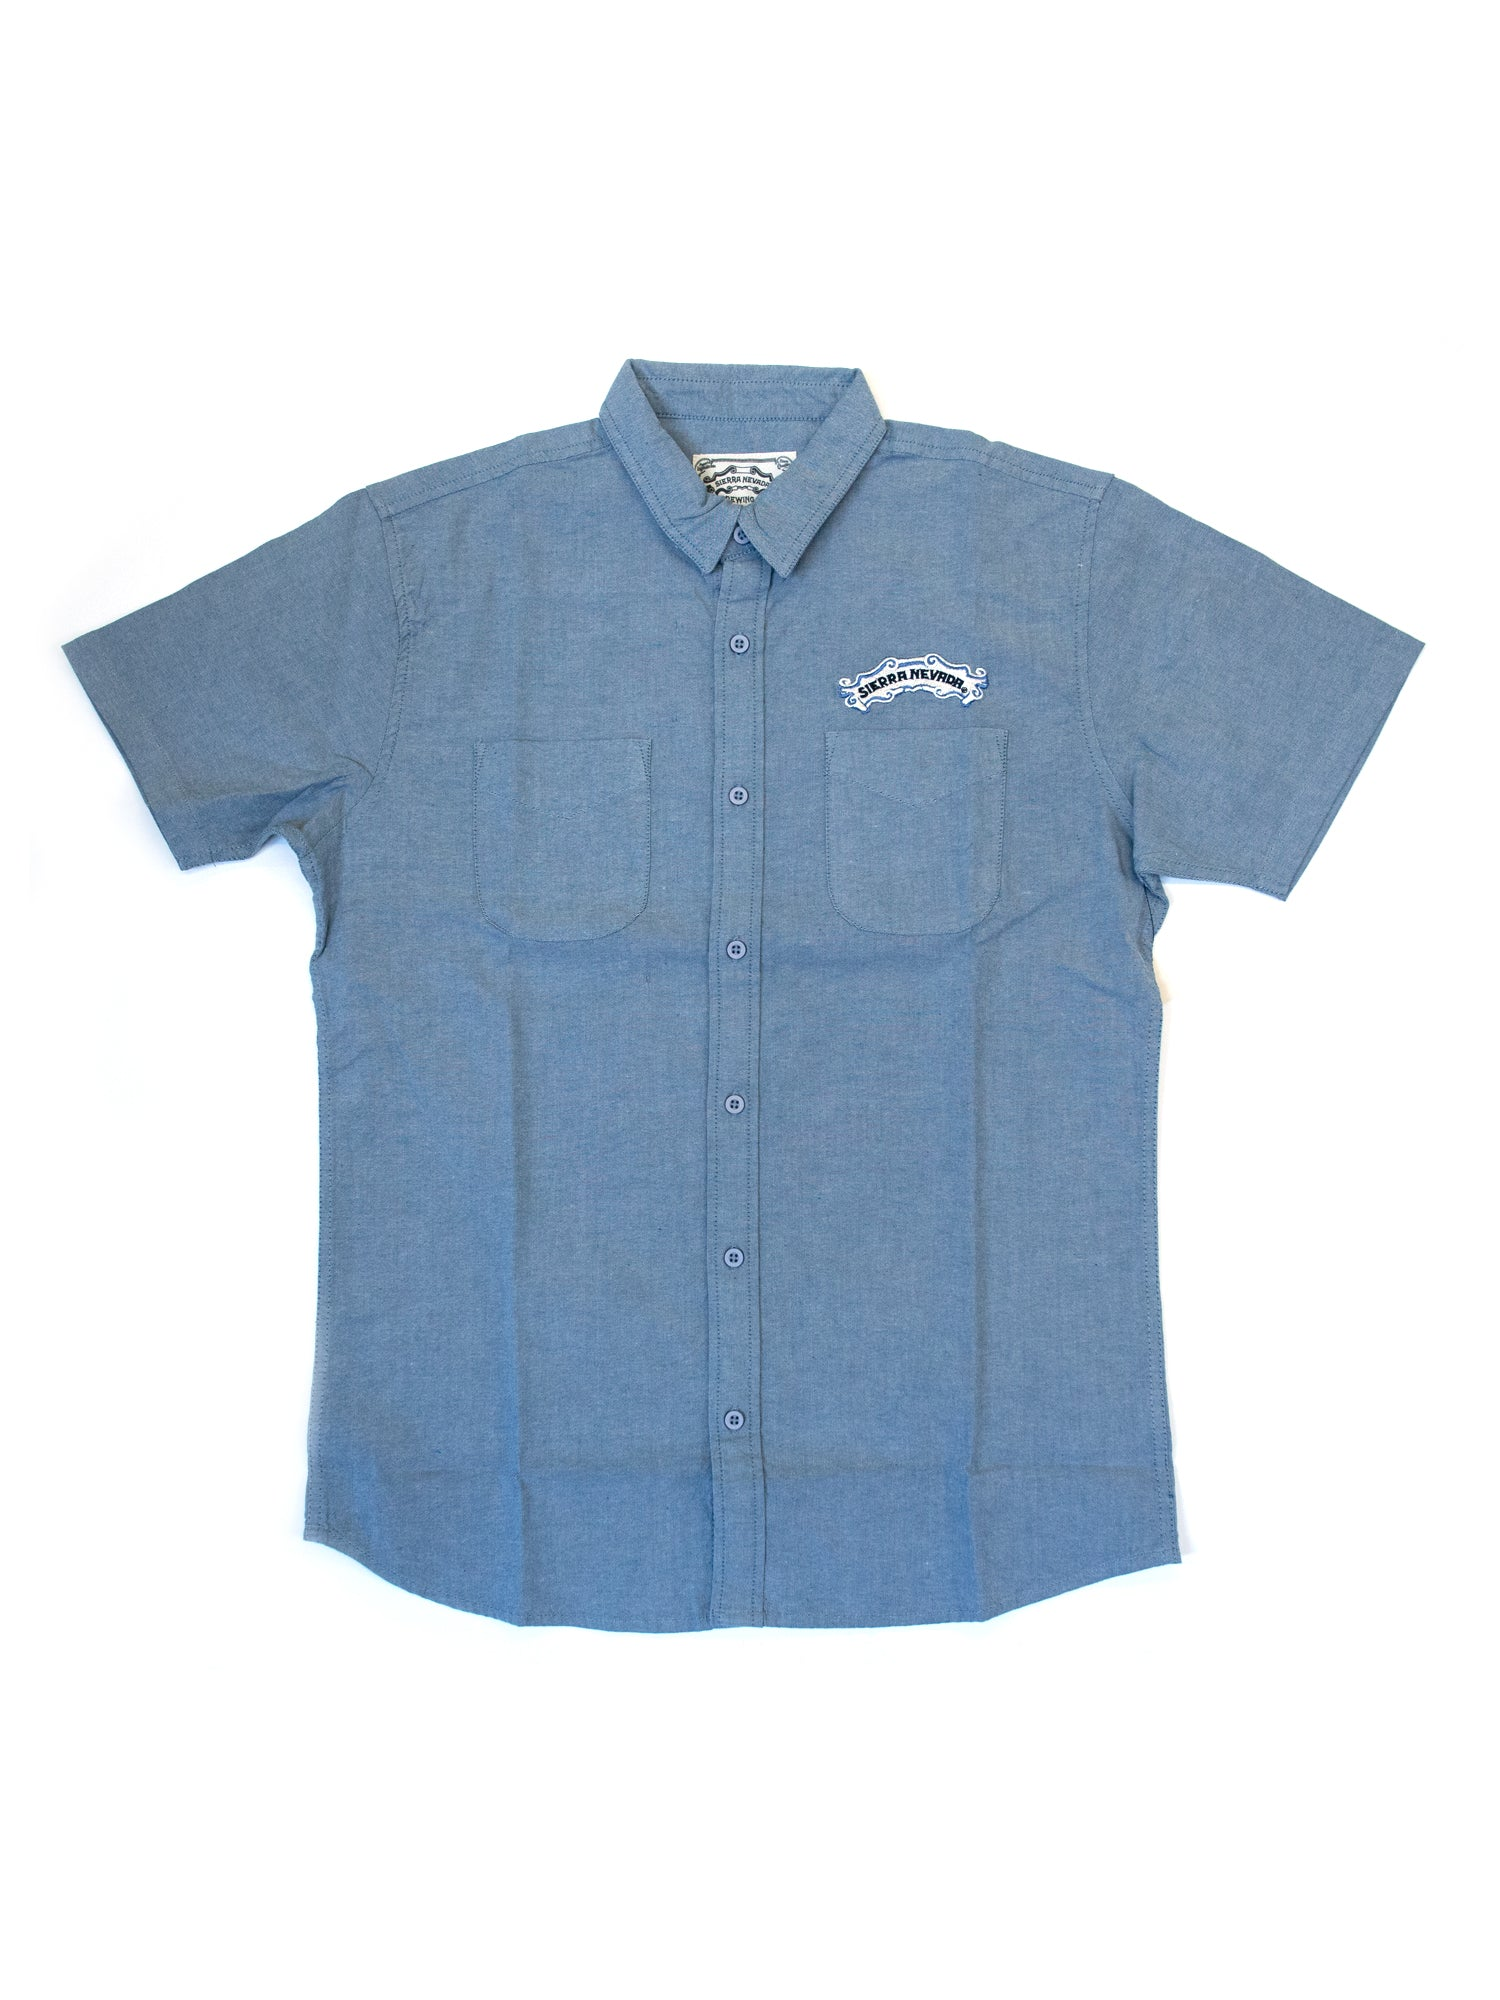 Chamber work shirt - Anderson Bros Design and Supply